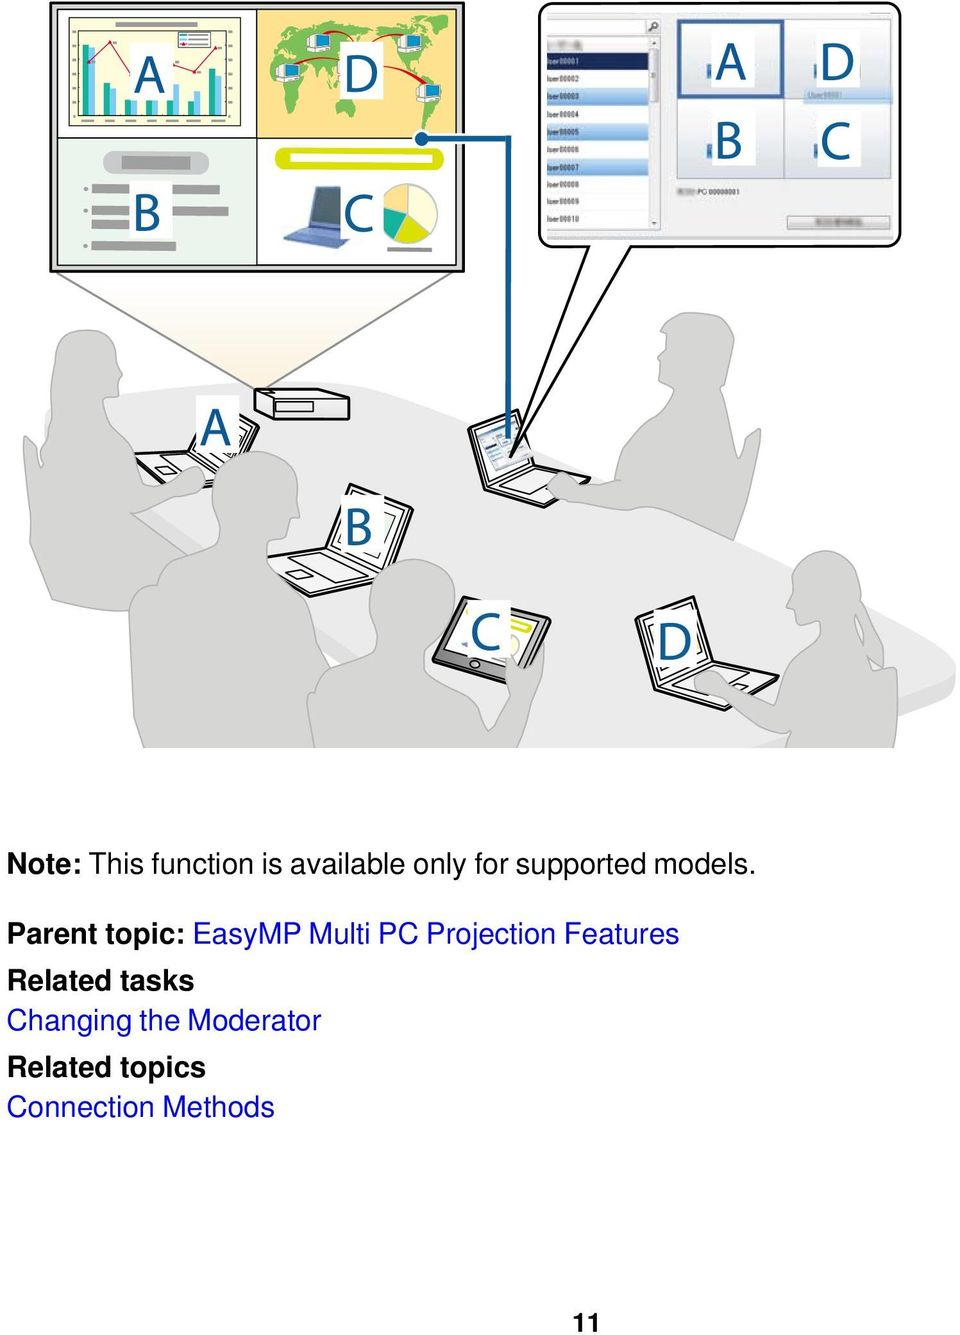 Parent topic: EasyMP Multi PC Projection